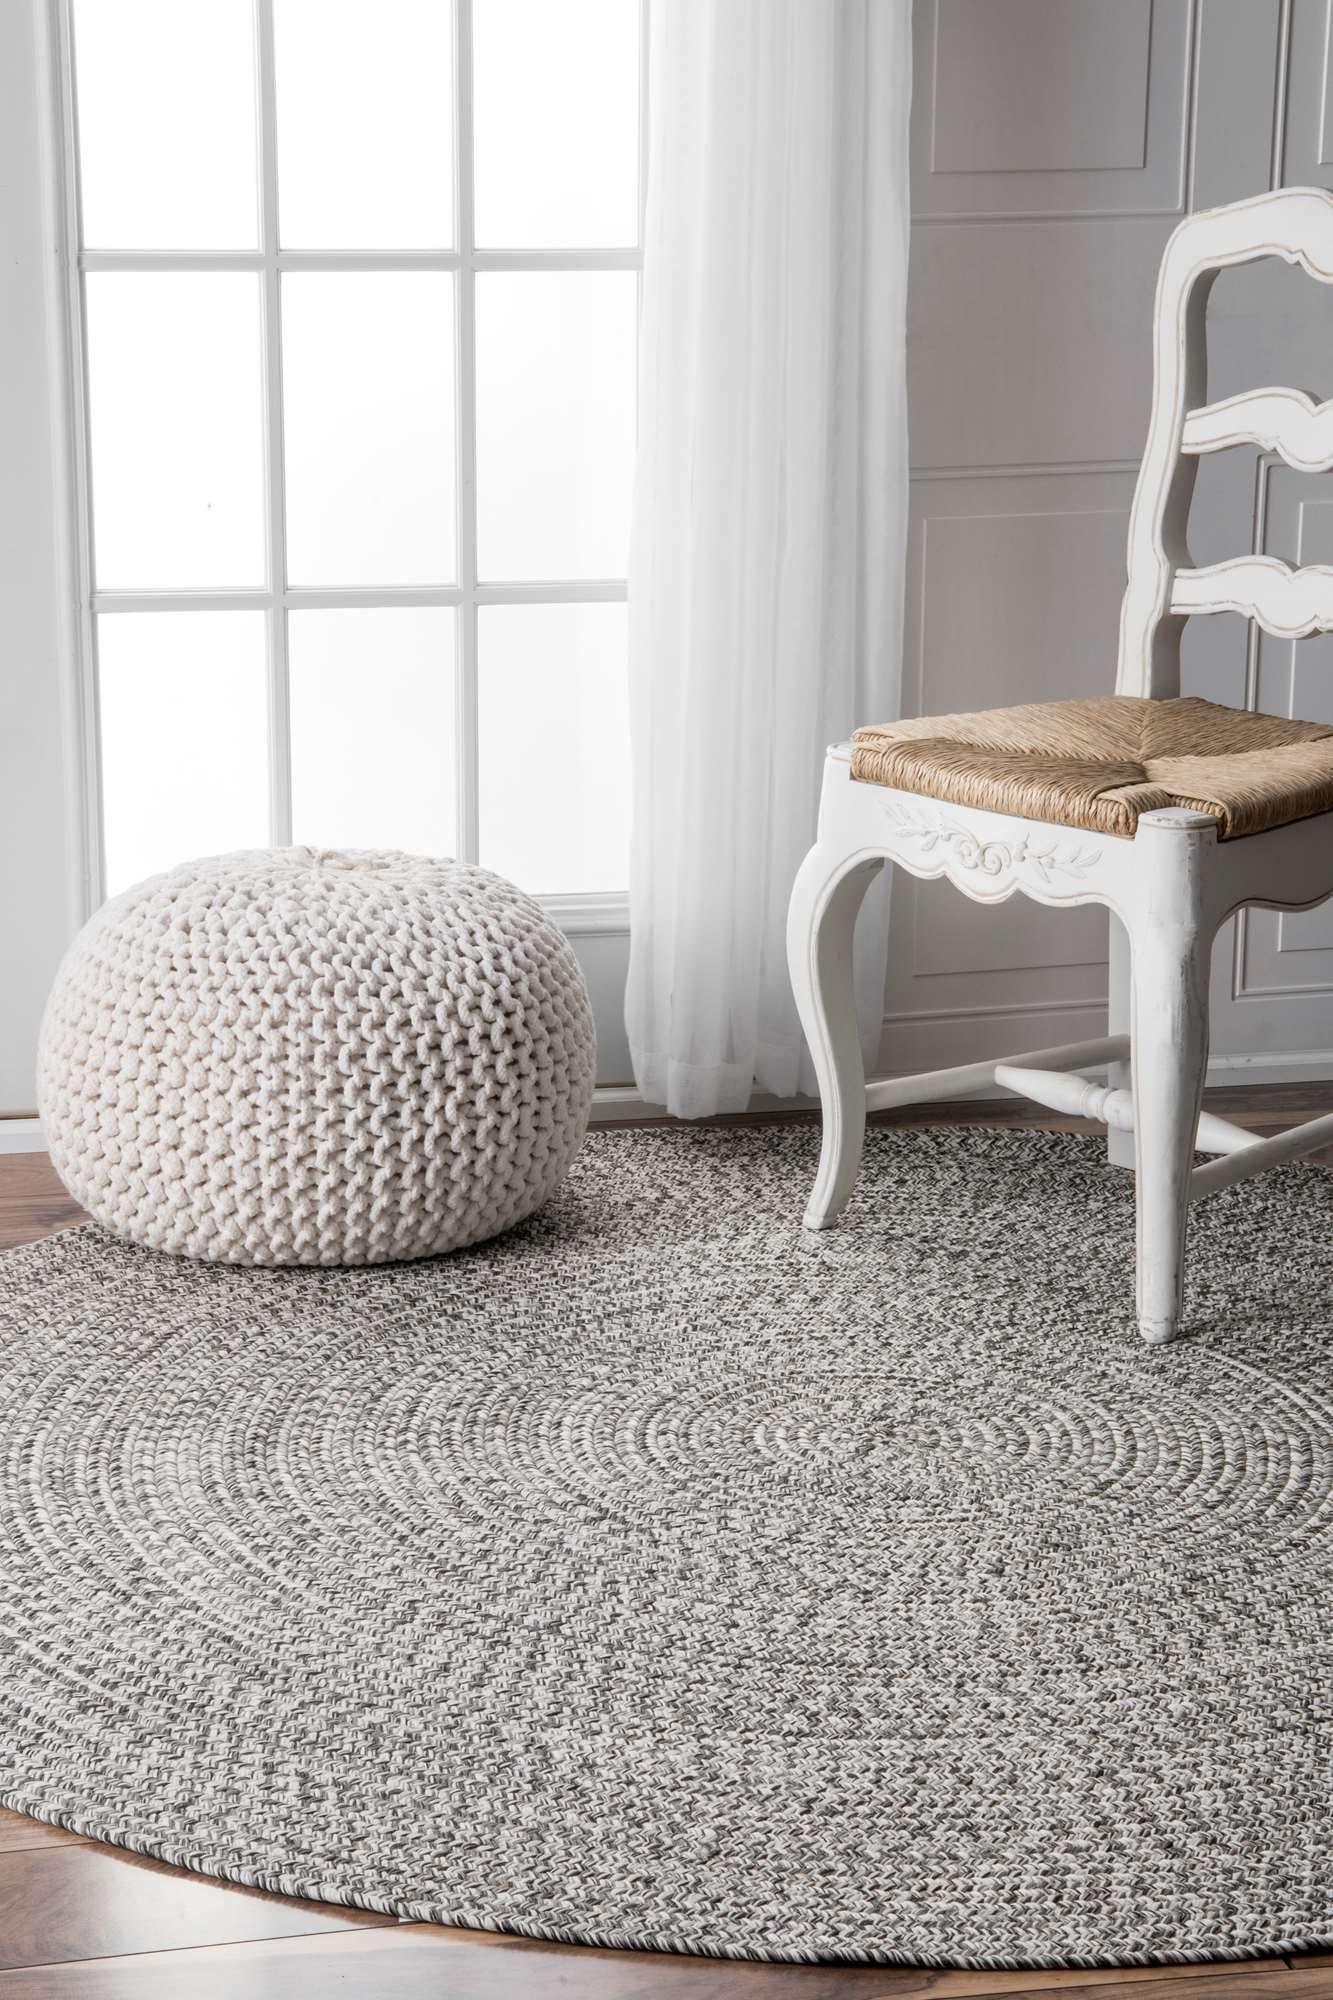 Bring This Contemporary And Braided Rug To Give An Elegant And Chic Look To Your Home Made Of 100 Percent Polypropylene Fiber The Rug Is Thin Tapetes Quartos